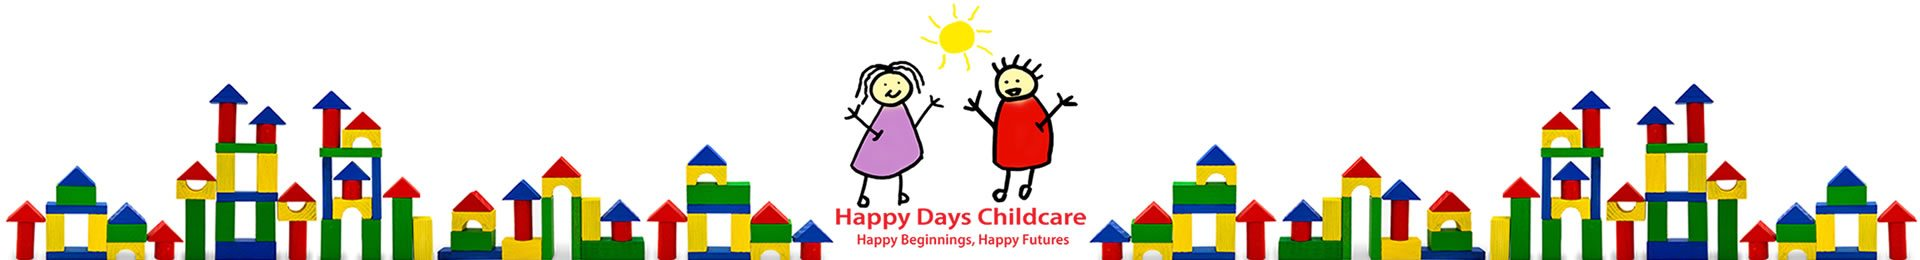 Happy Days Childcare Nursery Grow with Us Childcare Development